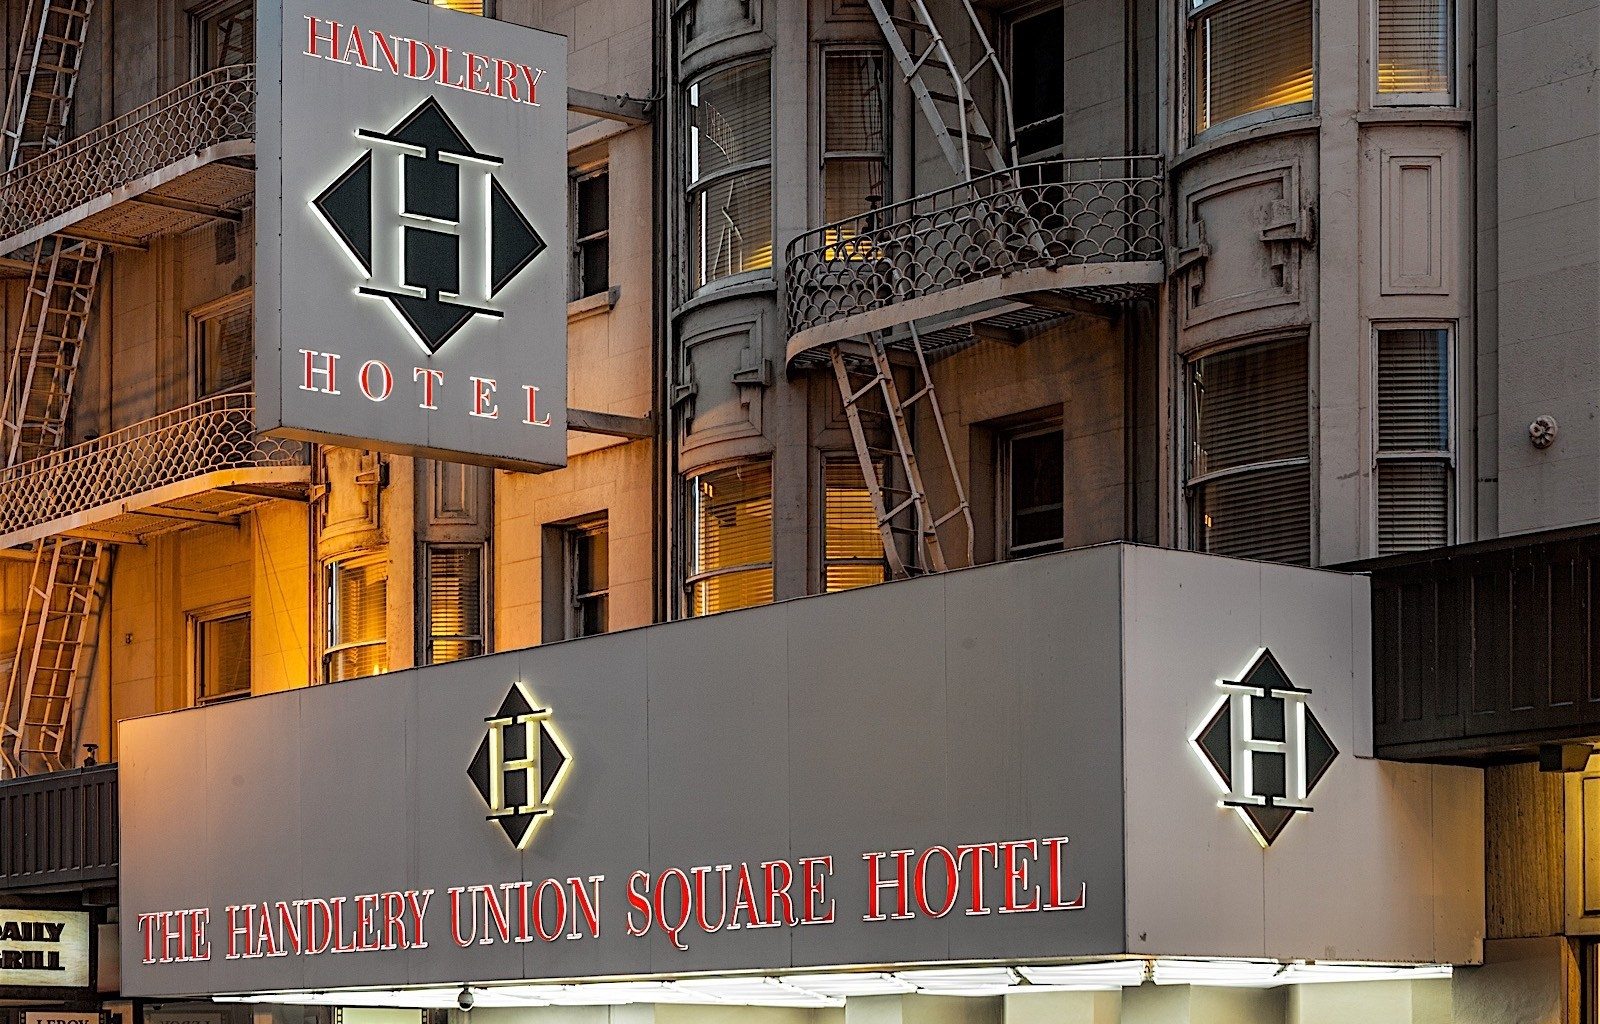 handlery union square hotel at 351 geary street san. Black Bedroom Furniture Sets. Home Design Ideas